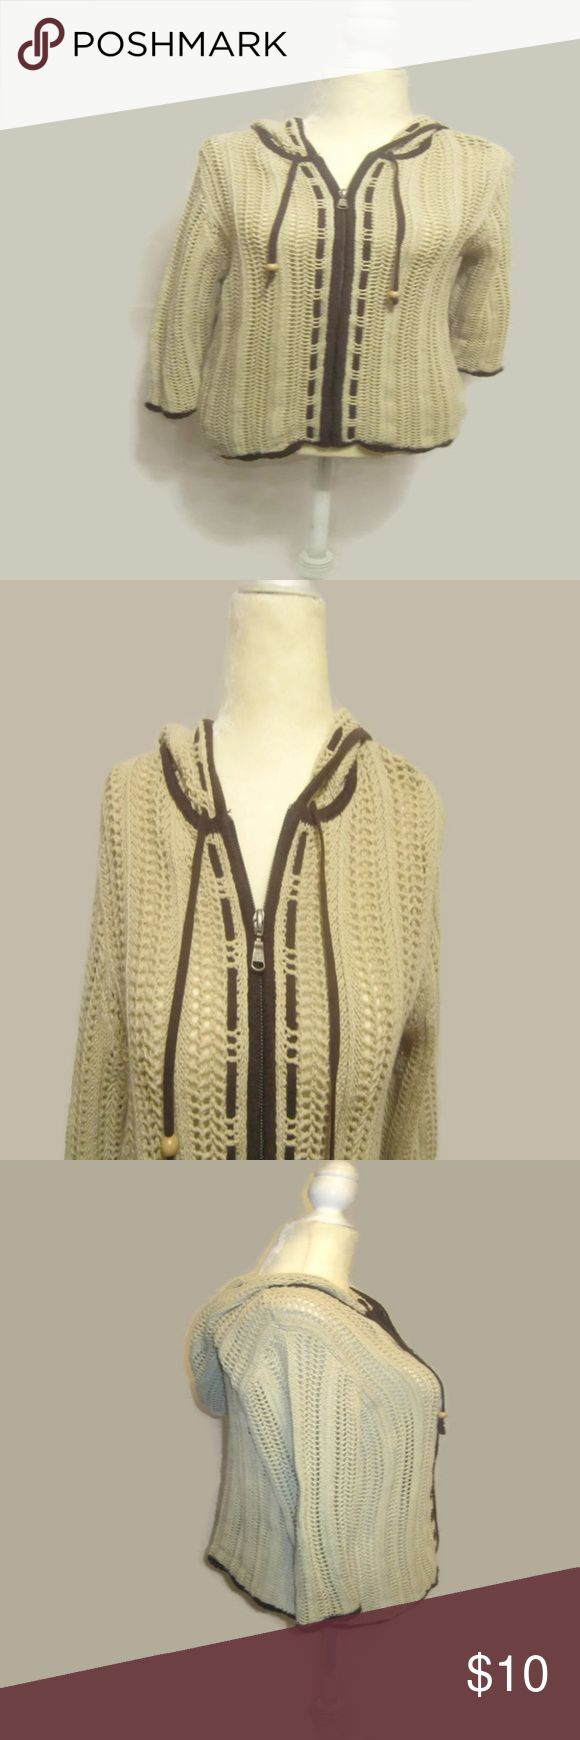 "Eddie Bauer Open Weave Hooded Cardigan Nice Open Weave Hoodie Zip Up Cardigan from Eddie Bauer  Full Zip Up  Nice Neutral Beige with Brown Trim - Perfect Color to Pair with All of Your Favorites  Wooden Beads Tie Ends   Hood  Open Weave Crochet  Women's Size Medium Measure Armpit to Armpit 19"" Length from Shoulder to Hem 24""  EXCELLENT Pre-Owned Condition  Smoke Free Environment Eddie Bauer Sweaters Cardigans"